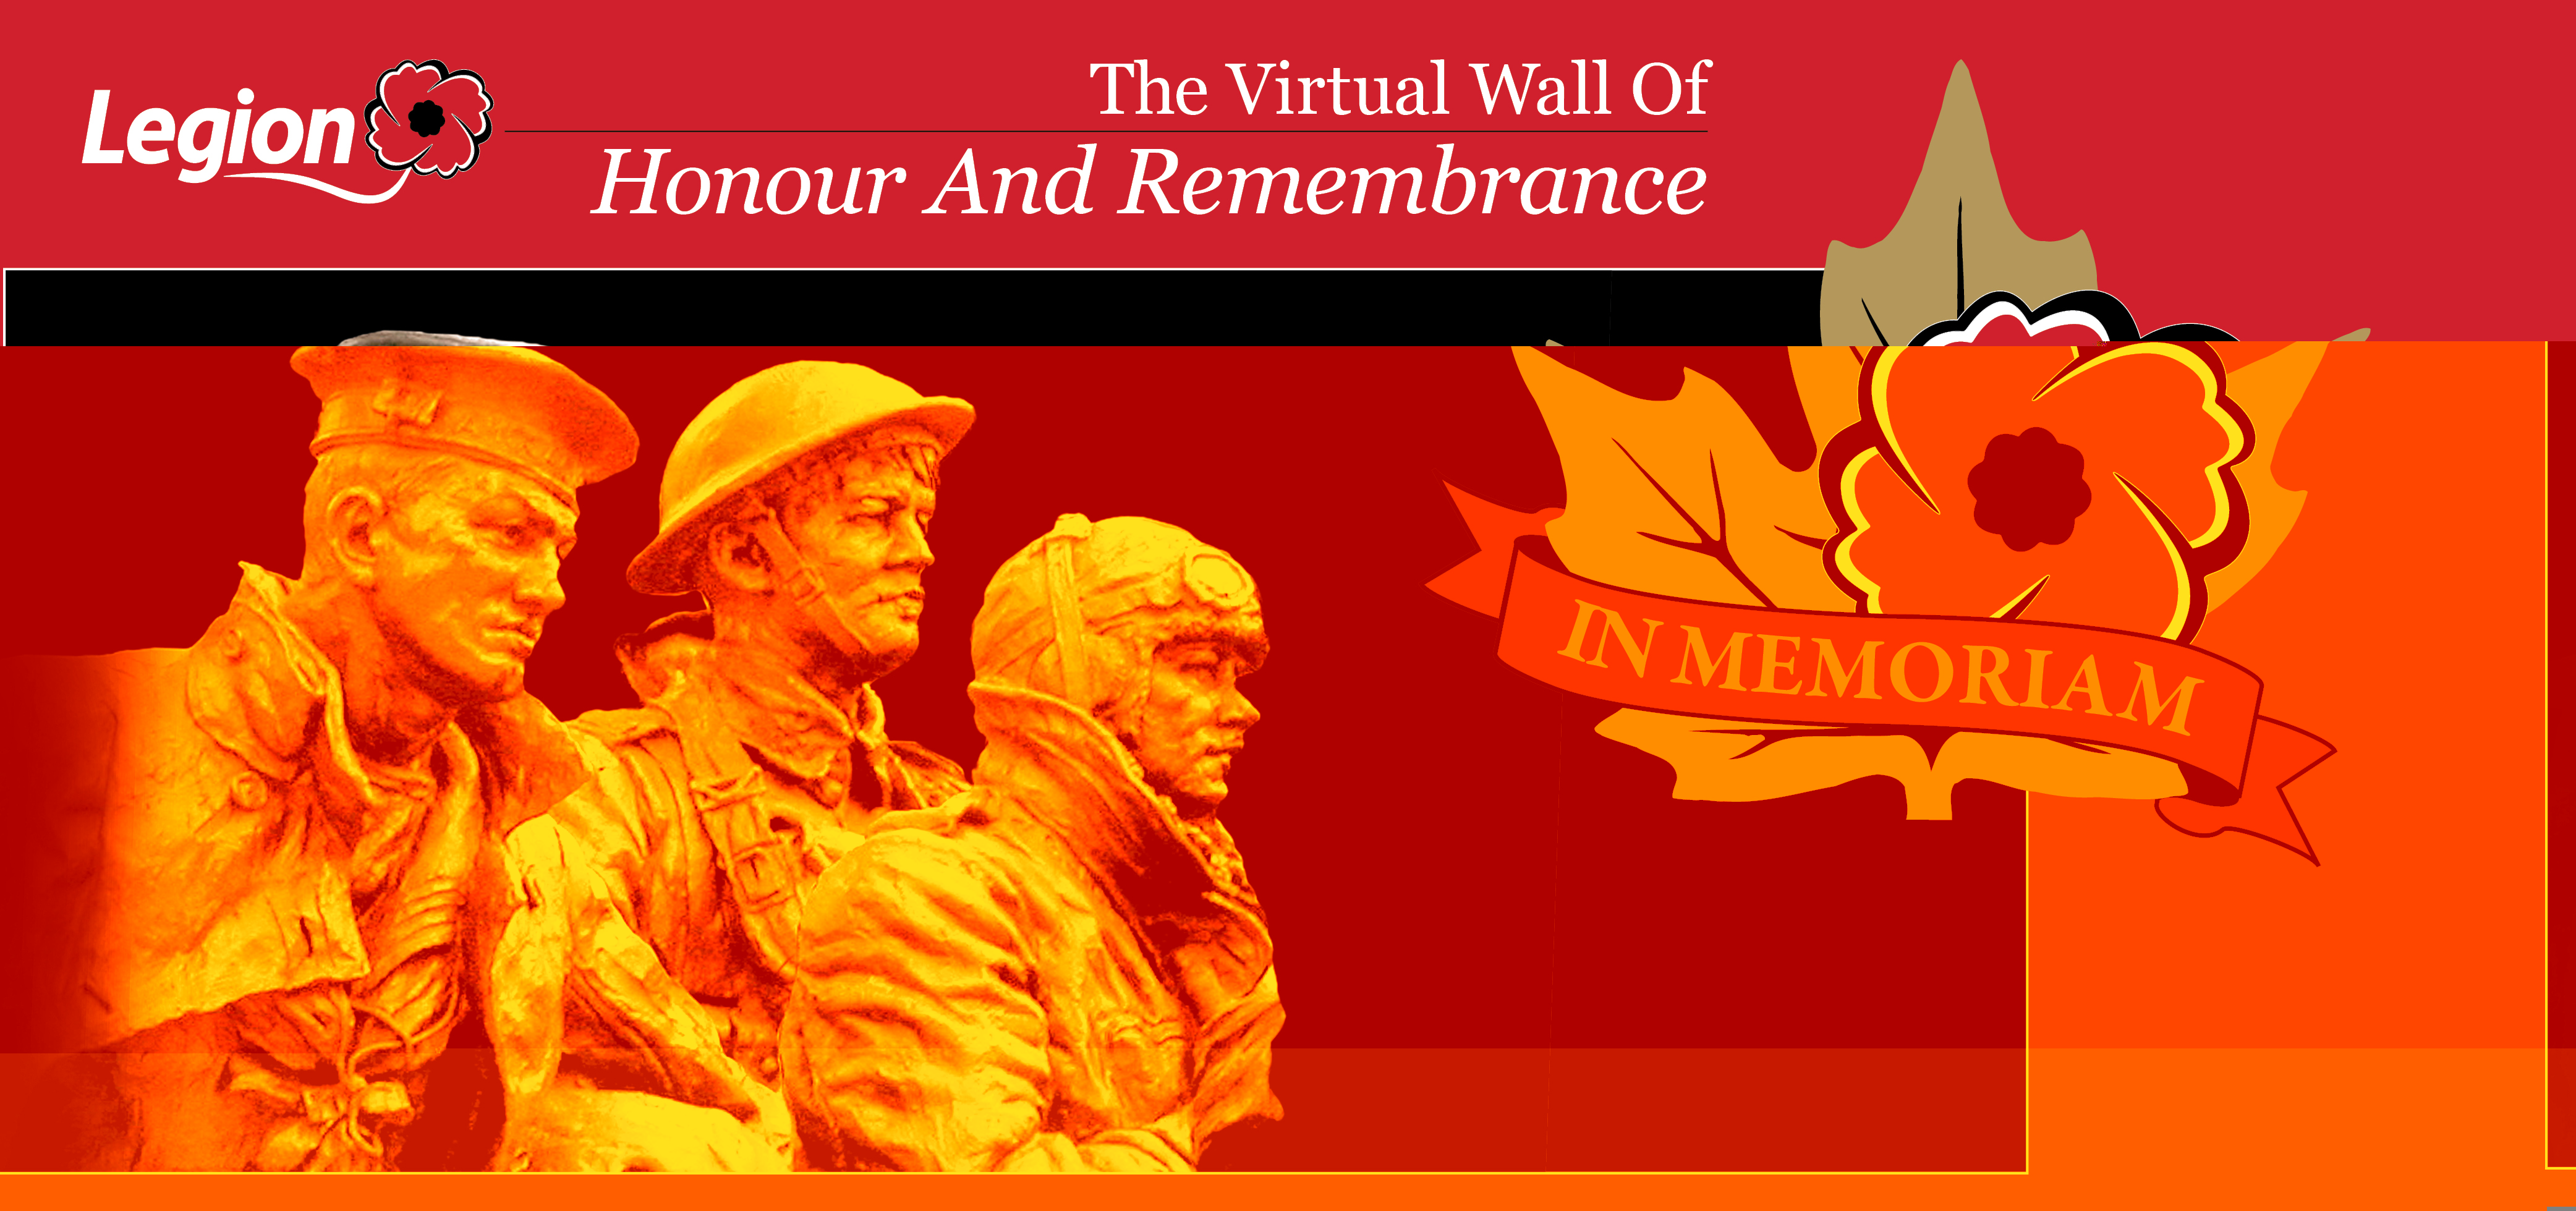 Legion Launches Virtual Wall of Honour and Remembrance for 2013